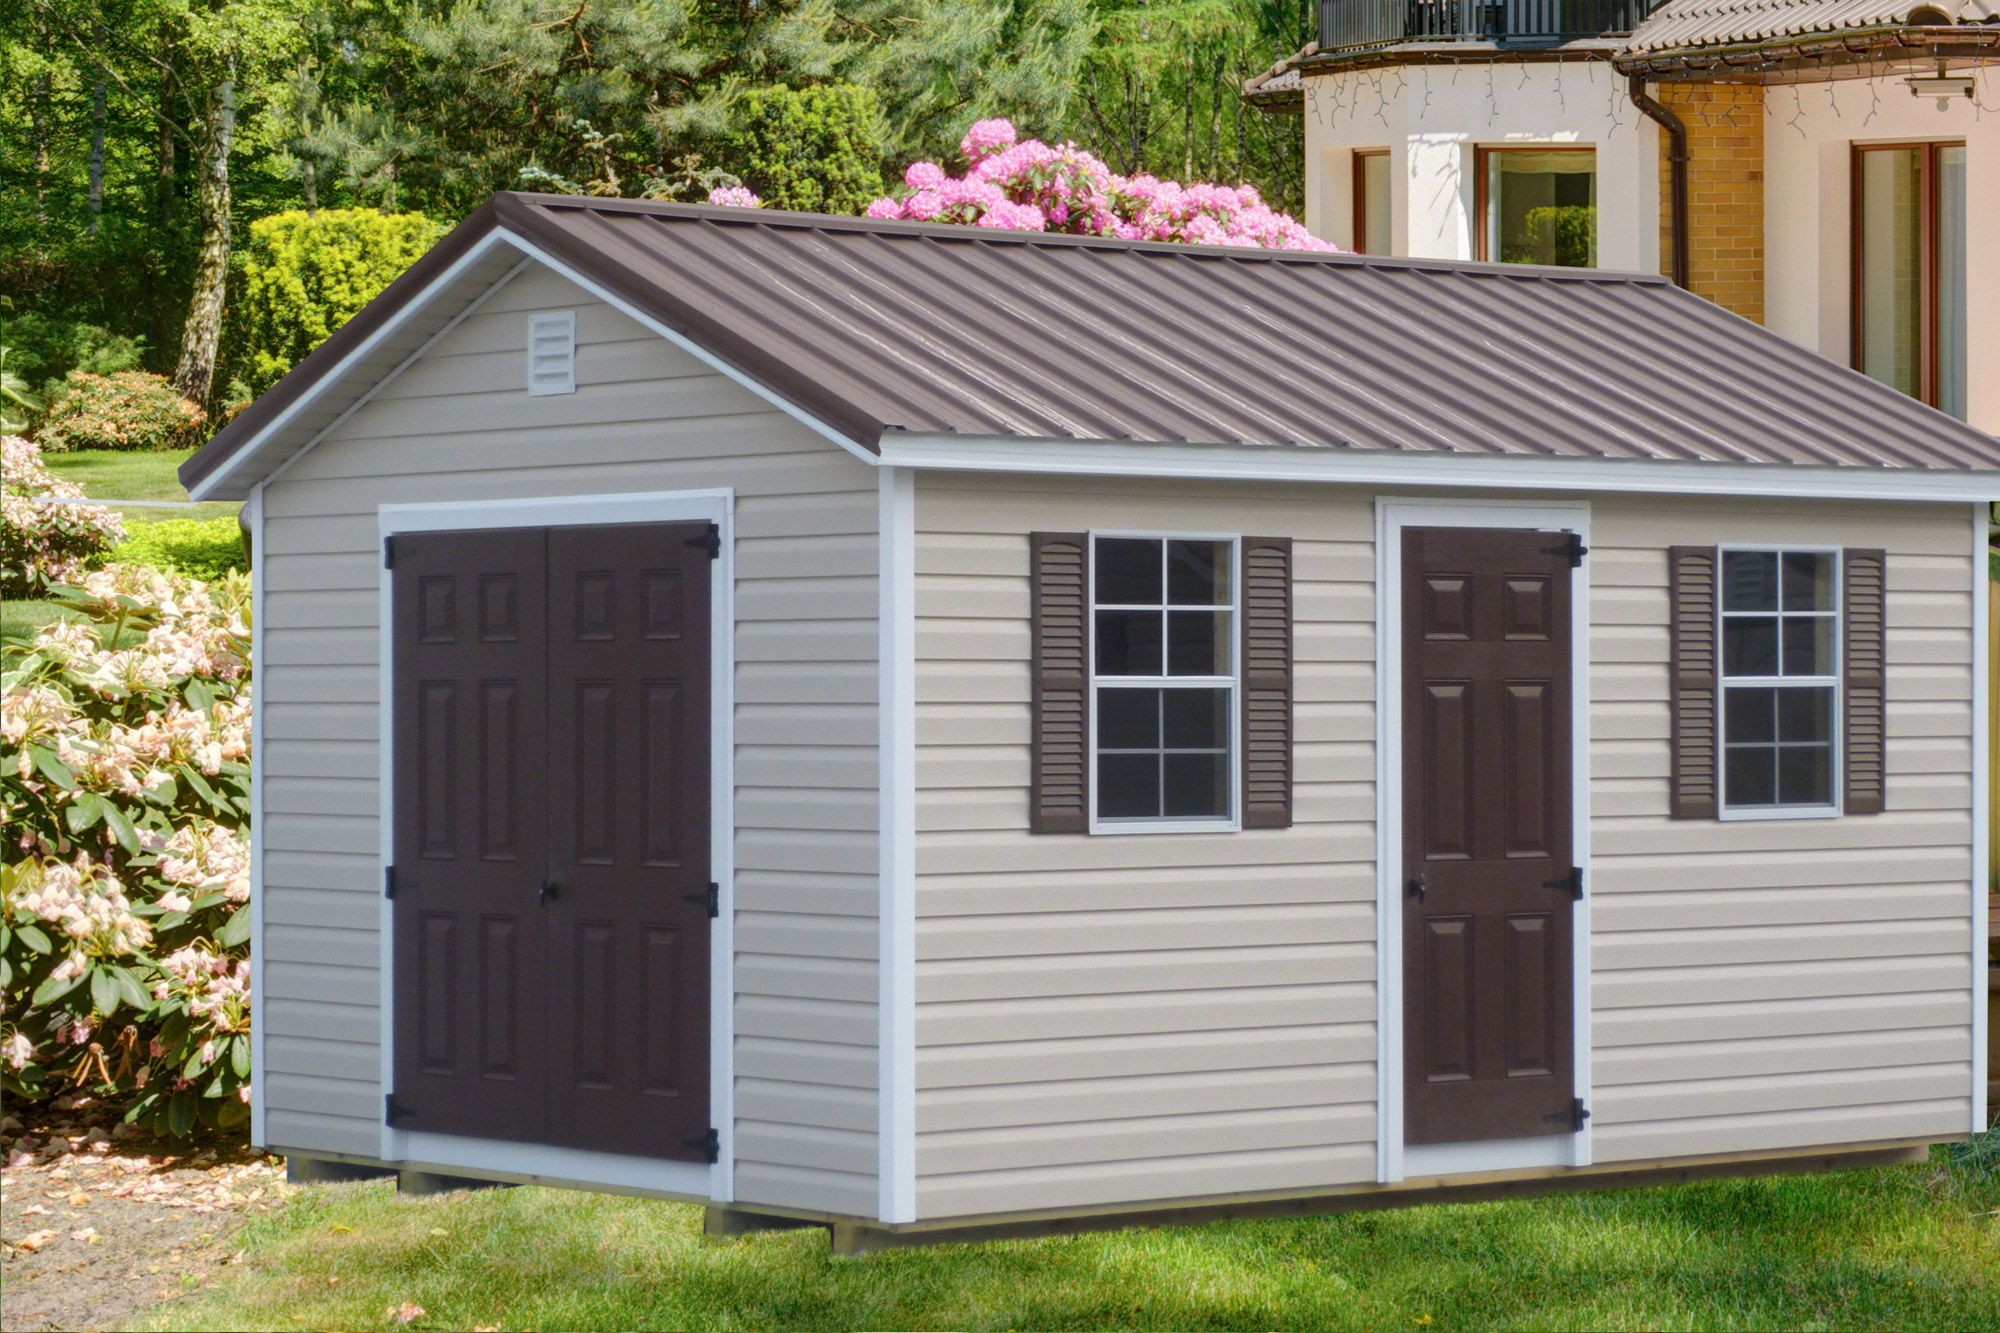 The Ranch Storage Sheds In Ky Tn Esh S Utility Buildings Backyard Sheds Shed Design Backyard Landscaping Designs